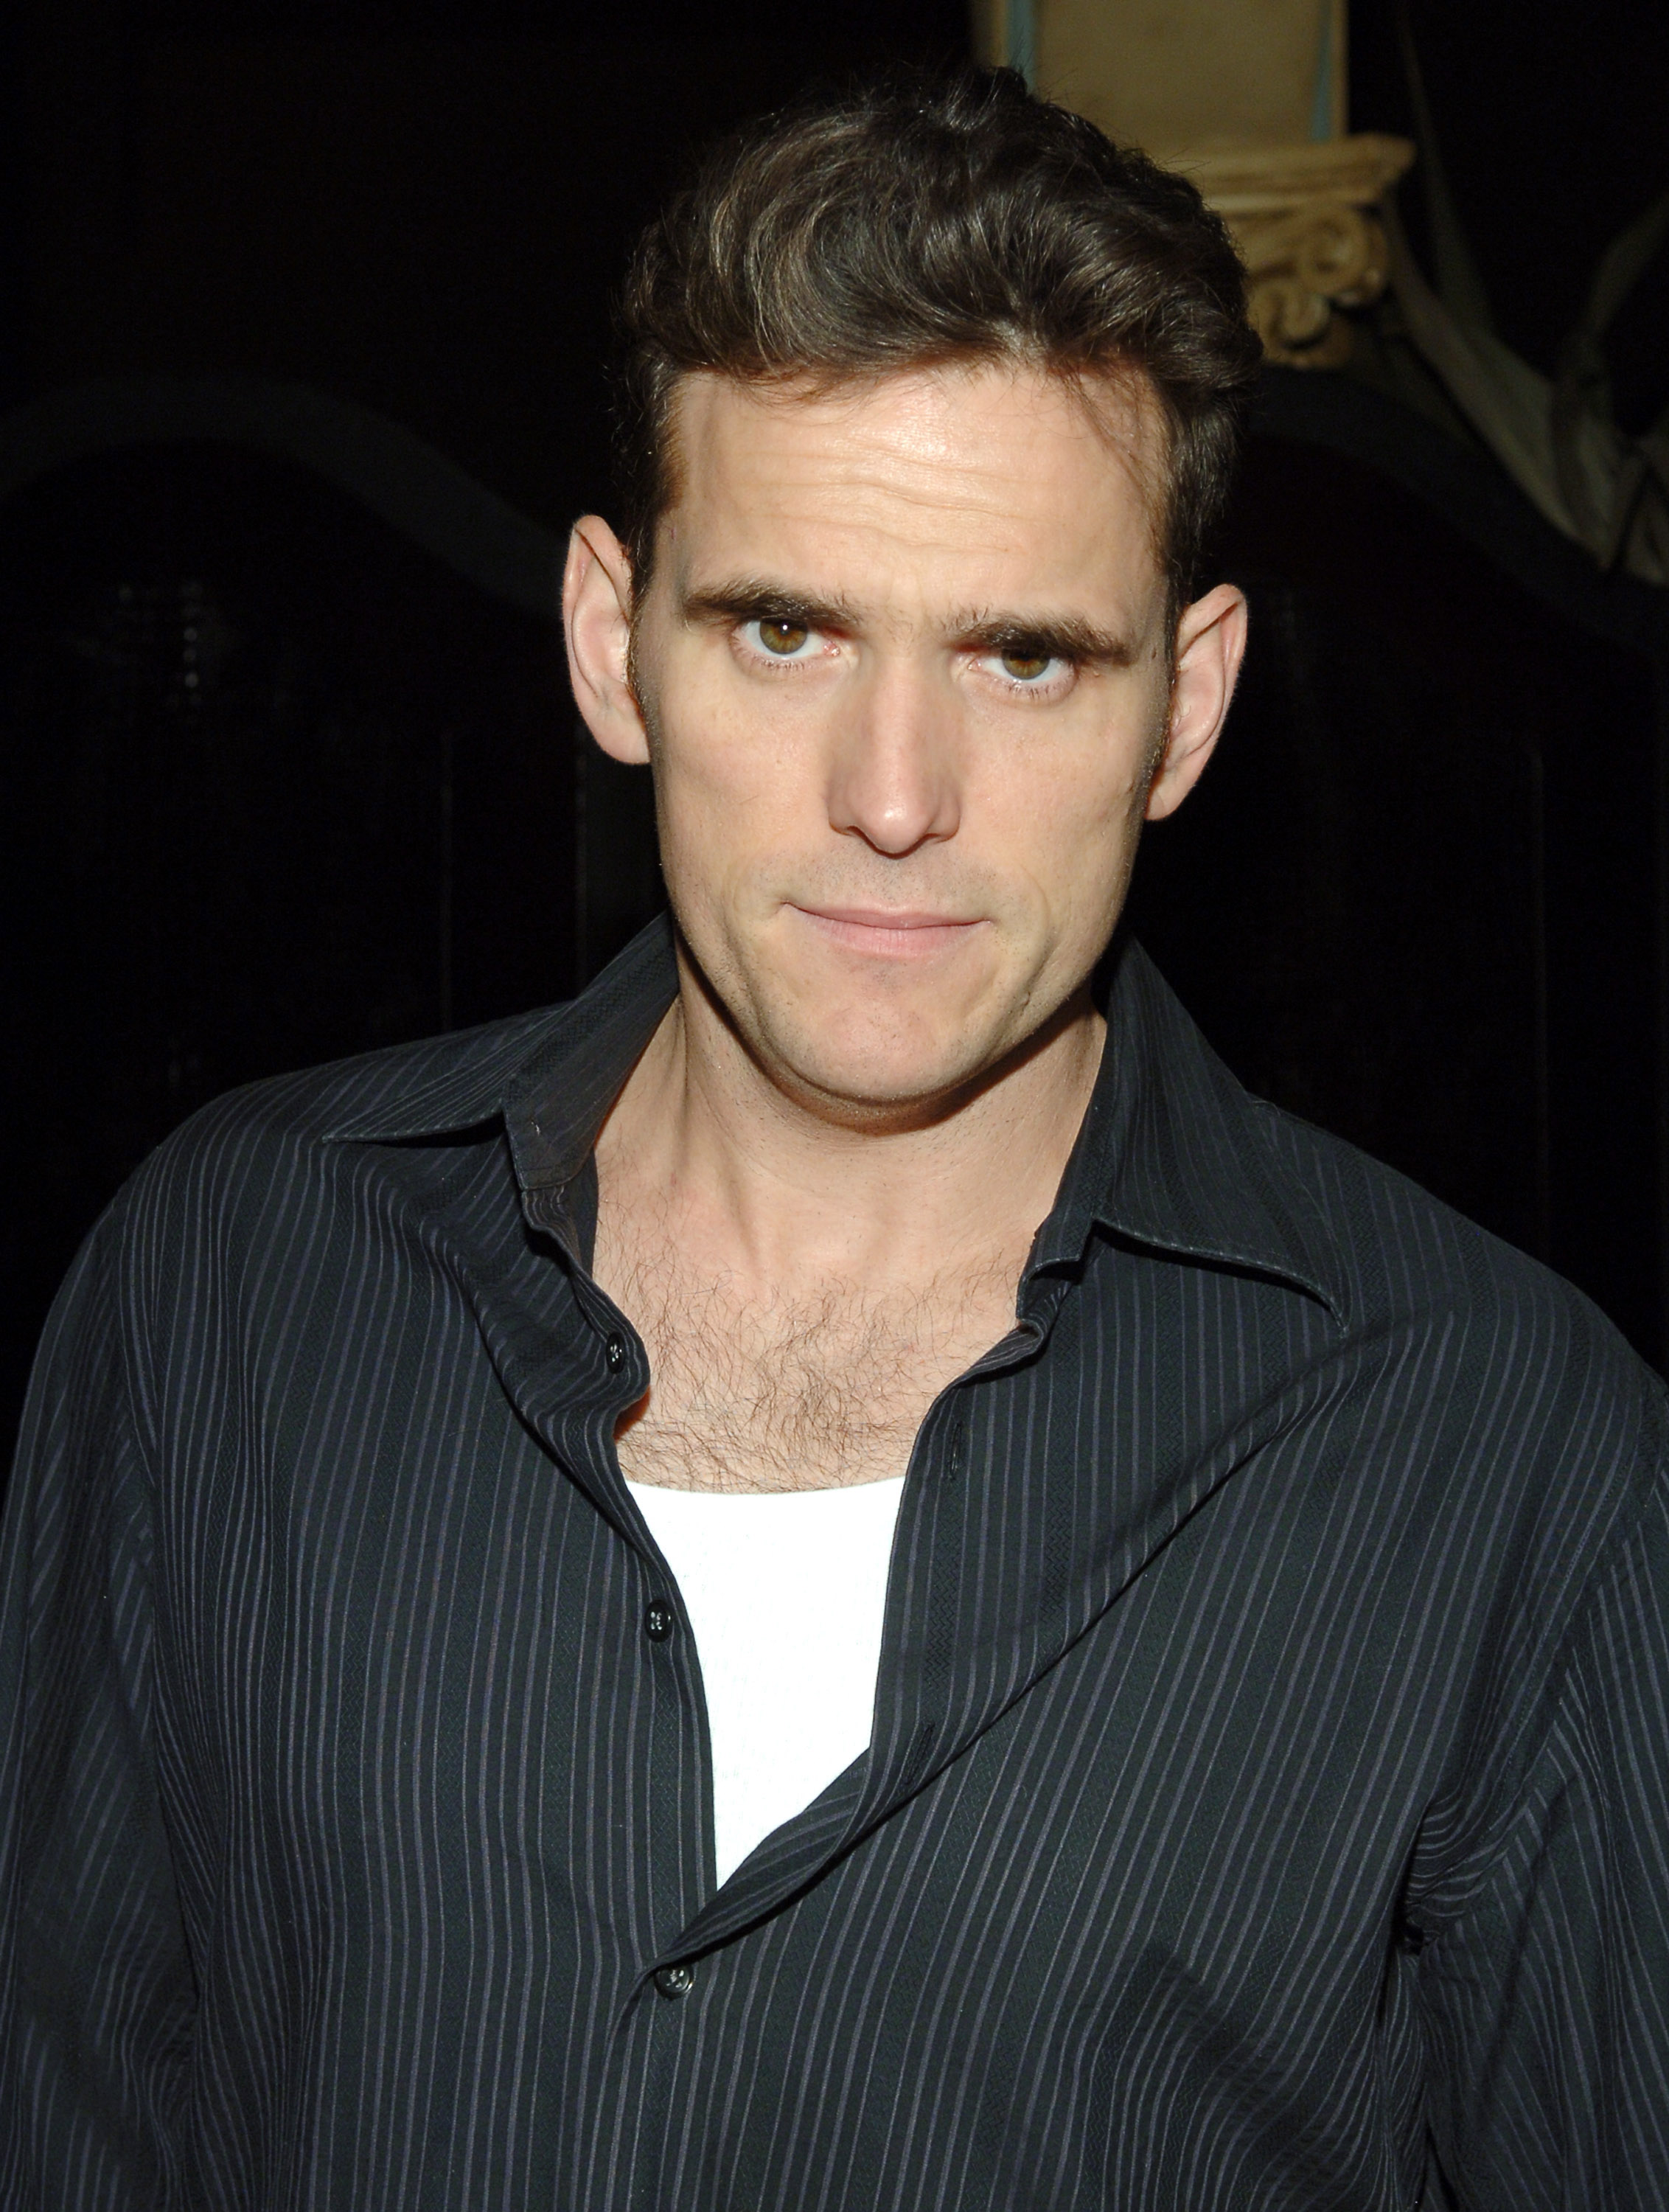 942e9dccb264d The Angry Zen of Matt Dillon – Rolling Stone